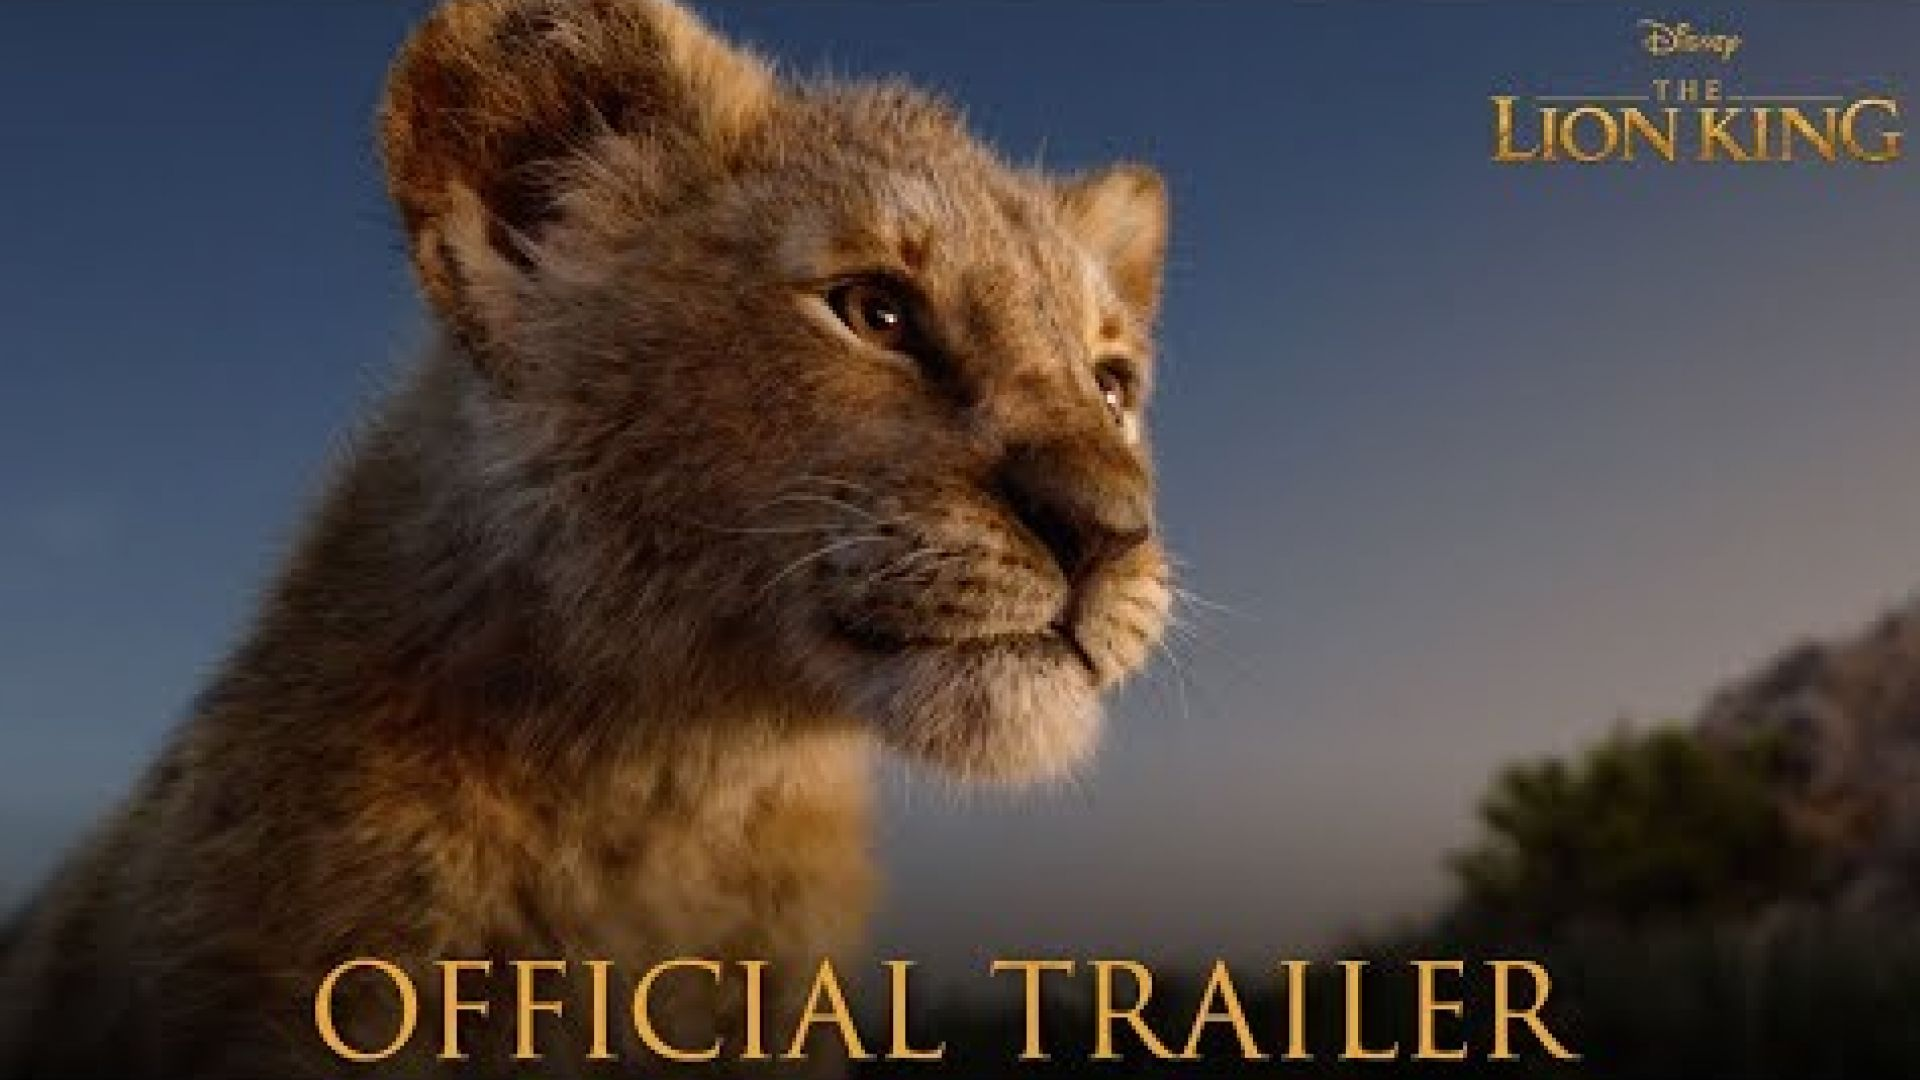 'The Lion King' Trailer in theaters July 19, 2019